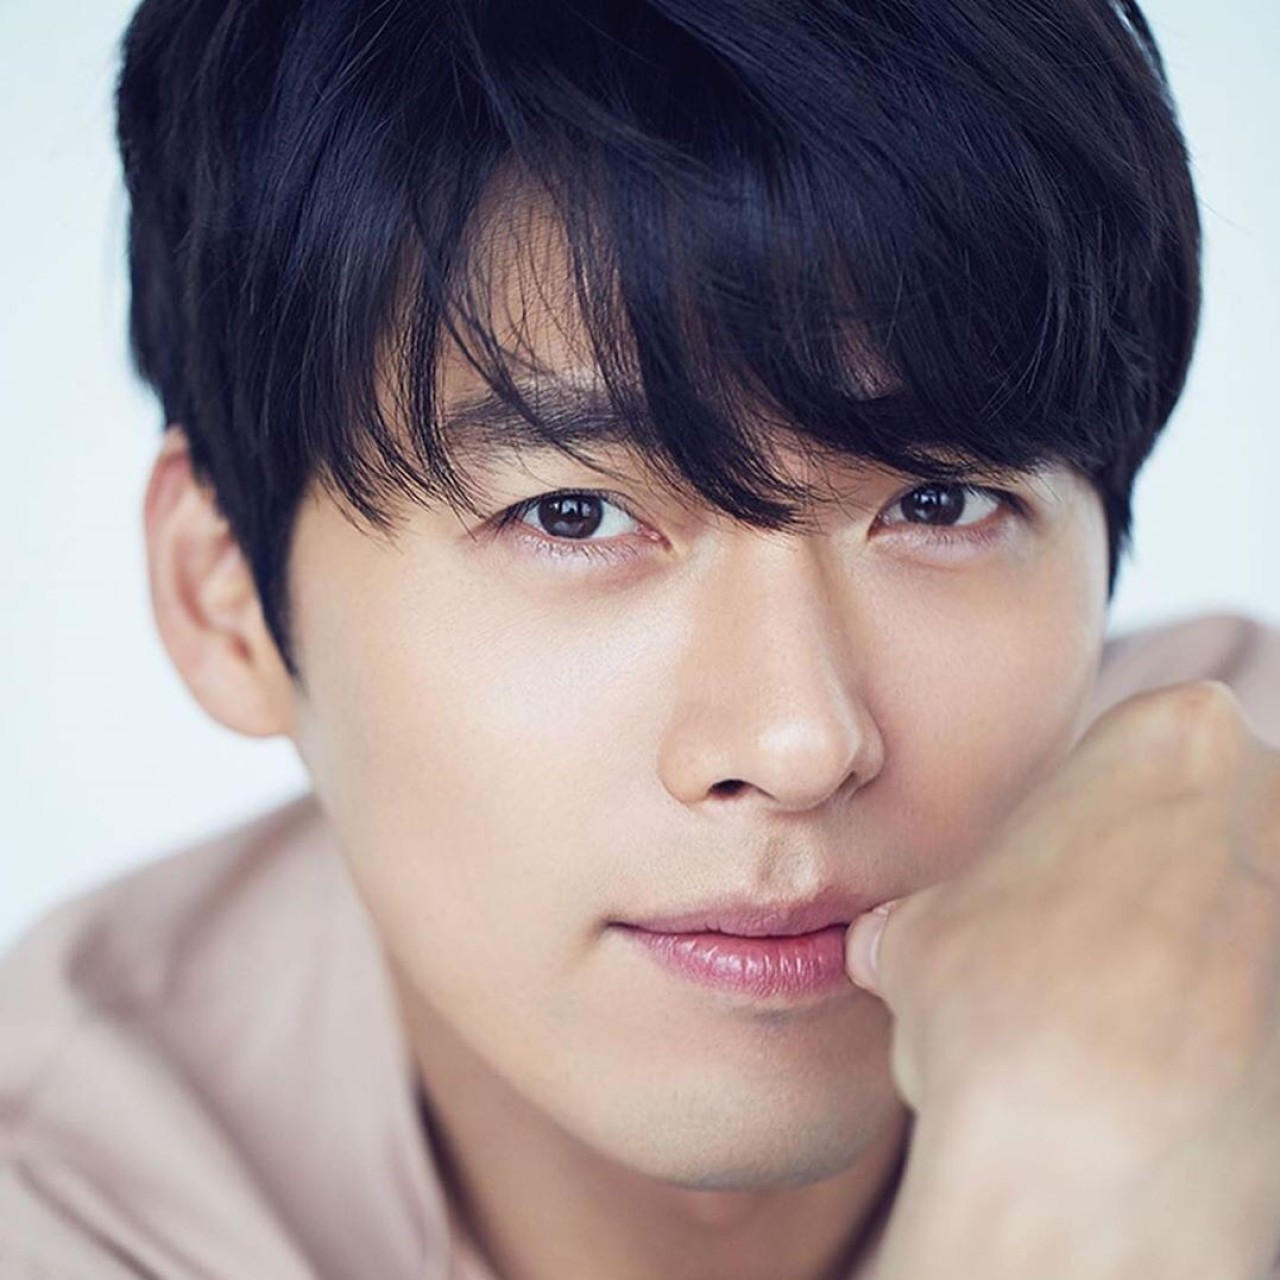 5 things to know about K-drama actor Hyun Bin, star of Crash ...